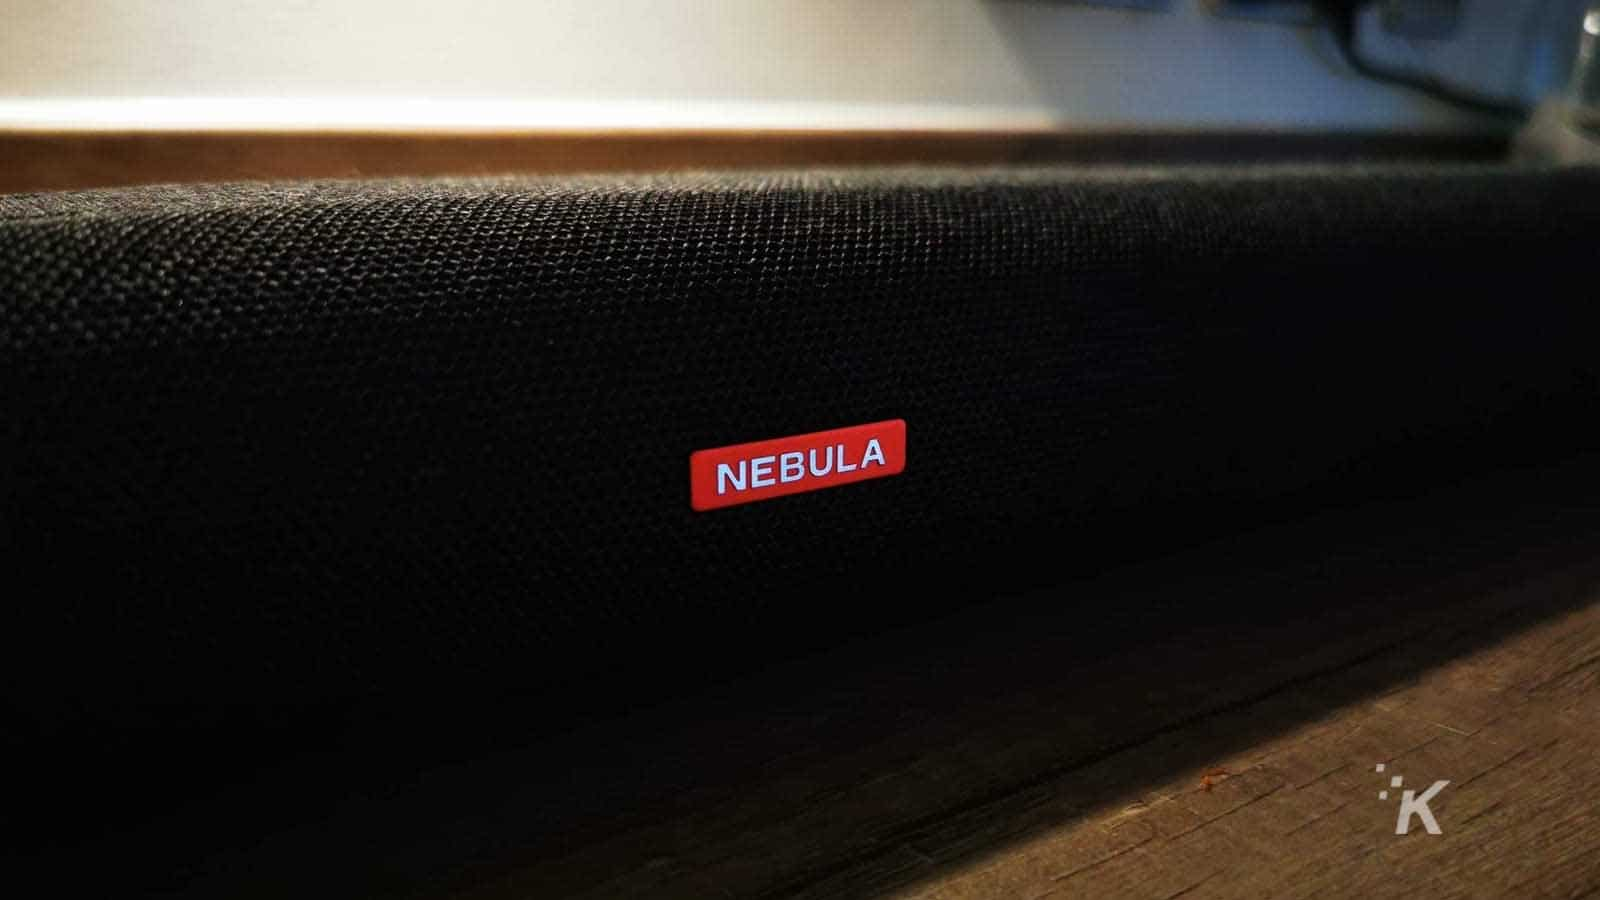 nebula soundbar close up